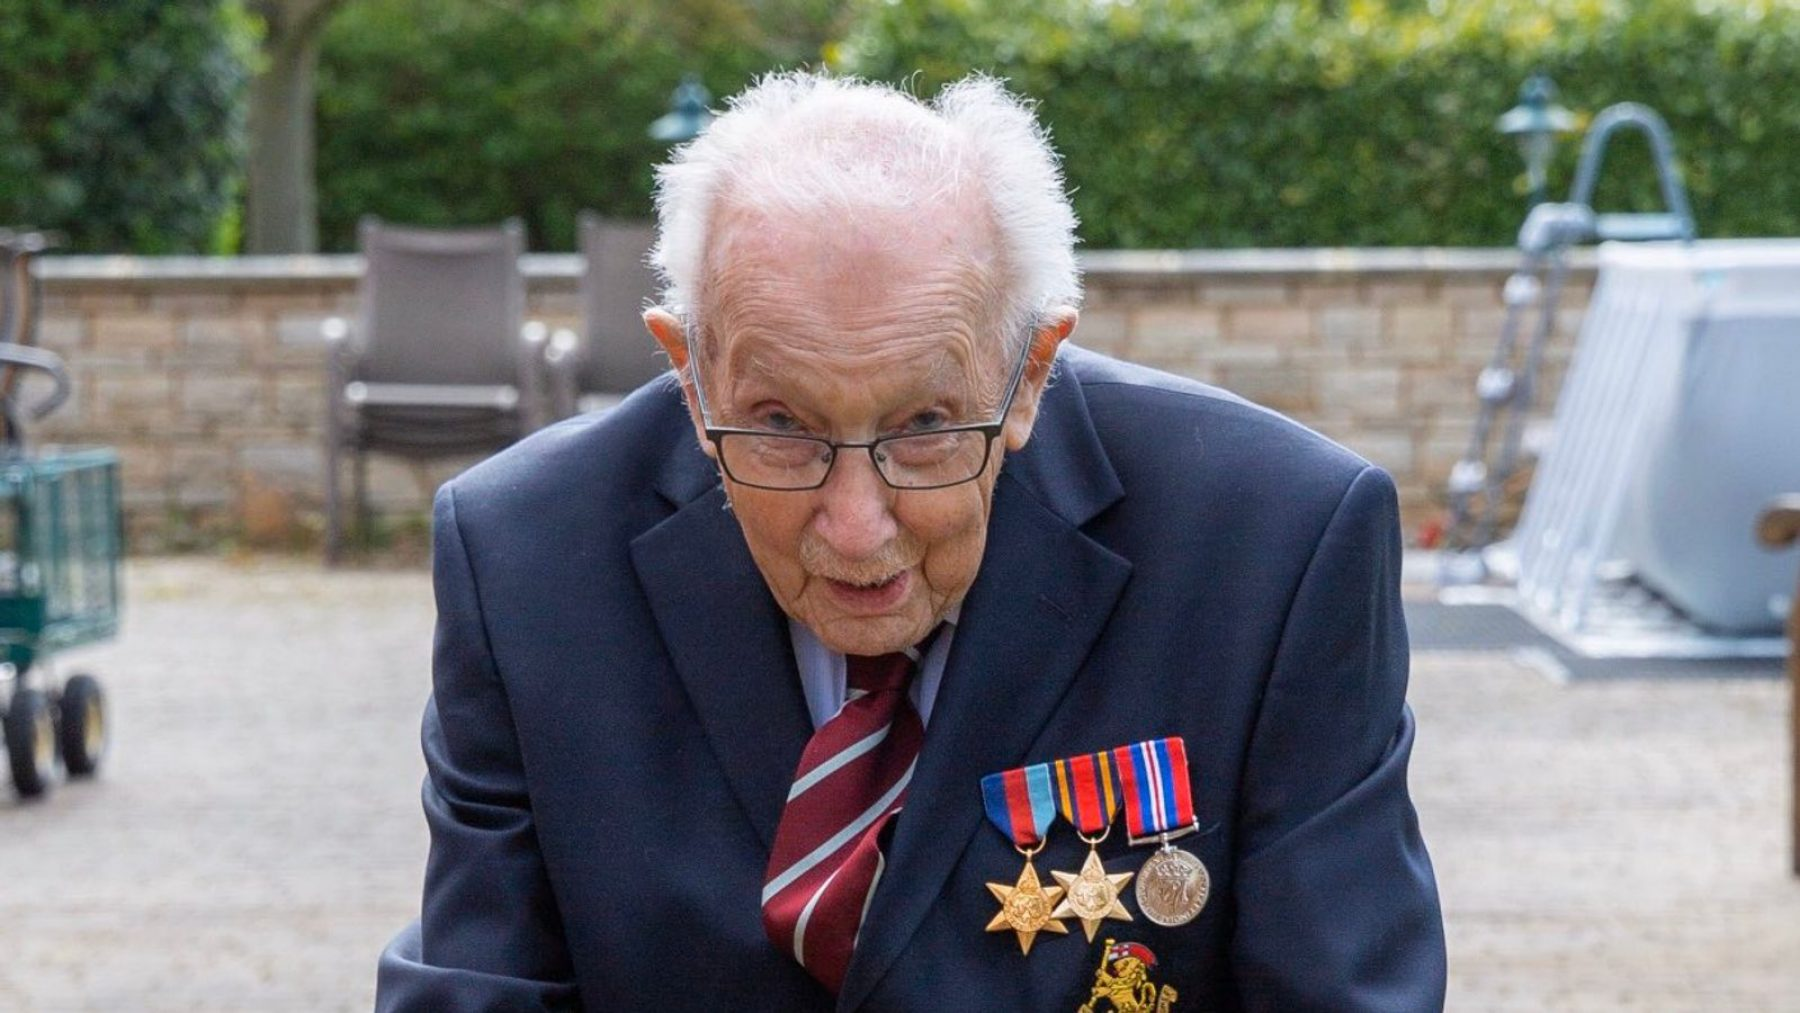 Image for Captain Tom Moore has now raised £27m for the NHS by walking laps of his garden